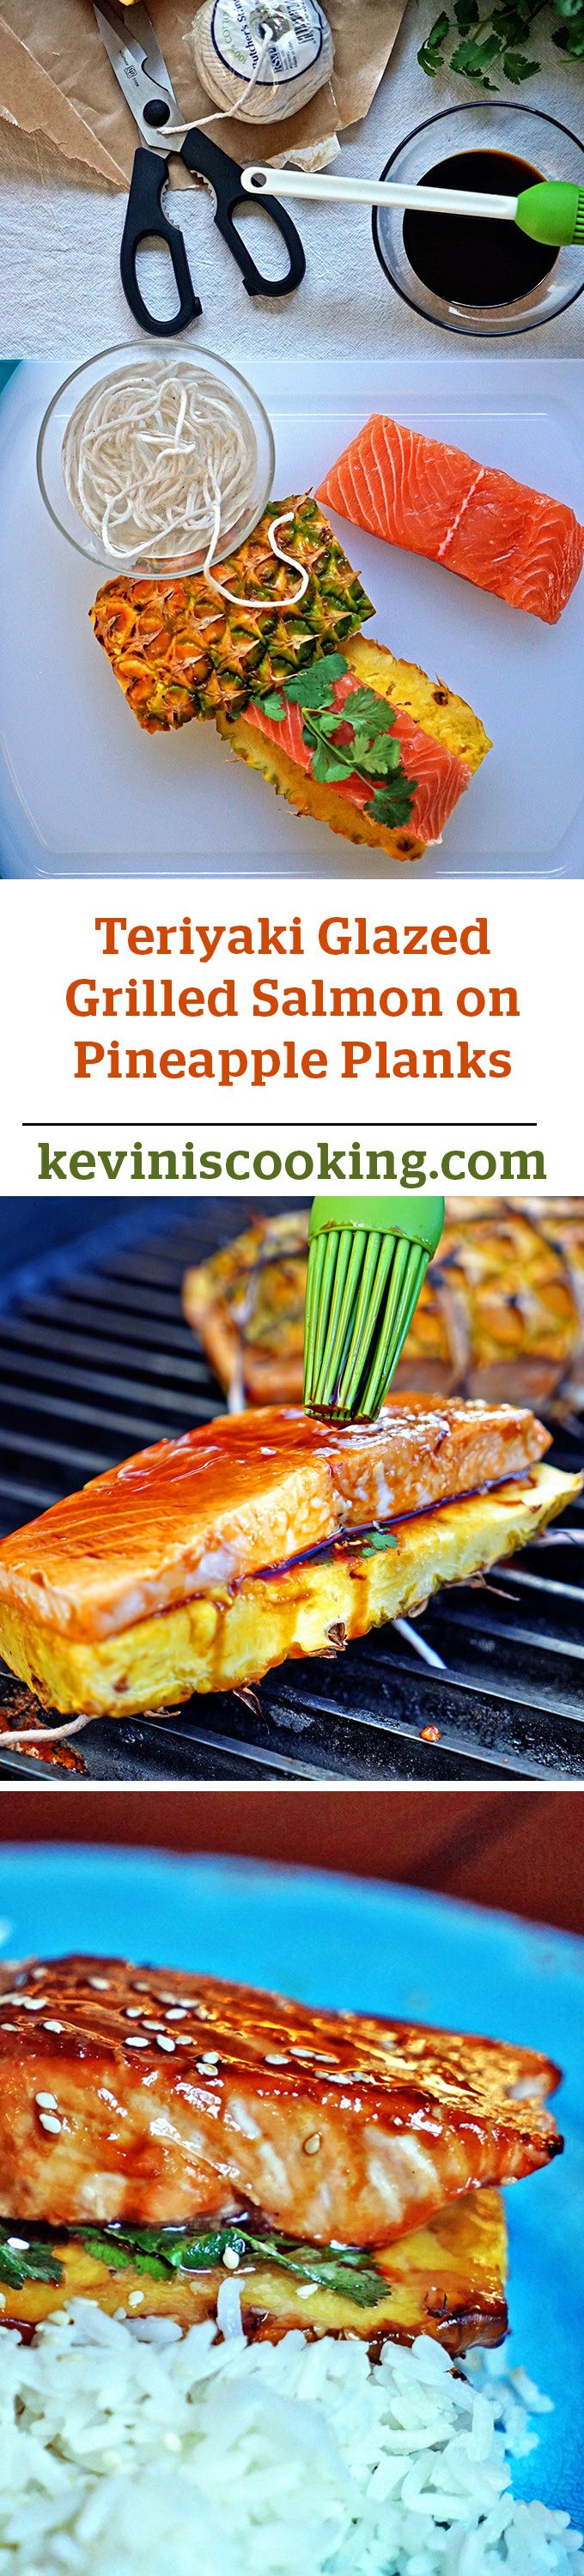 Teriyaki Glazed Grilled Salmon on Pineapple Planks - A simple and quick meal made in mere minutes. Each salmon filet lays on cilantro and is basted with teriyaki sauce before getting sandwiched between to pineapple planks. Grill to desired doneness and served with caramelized pineapple and steamed rice.